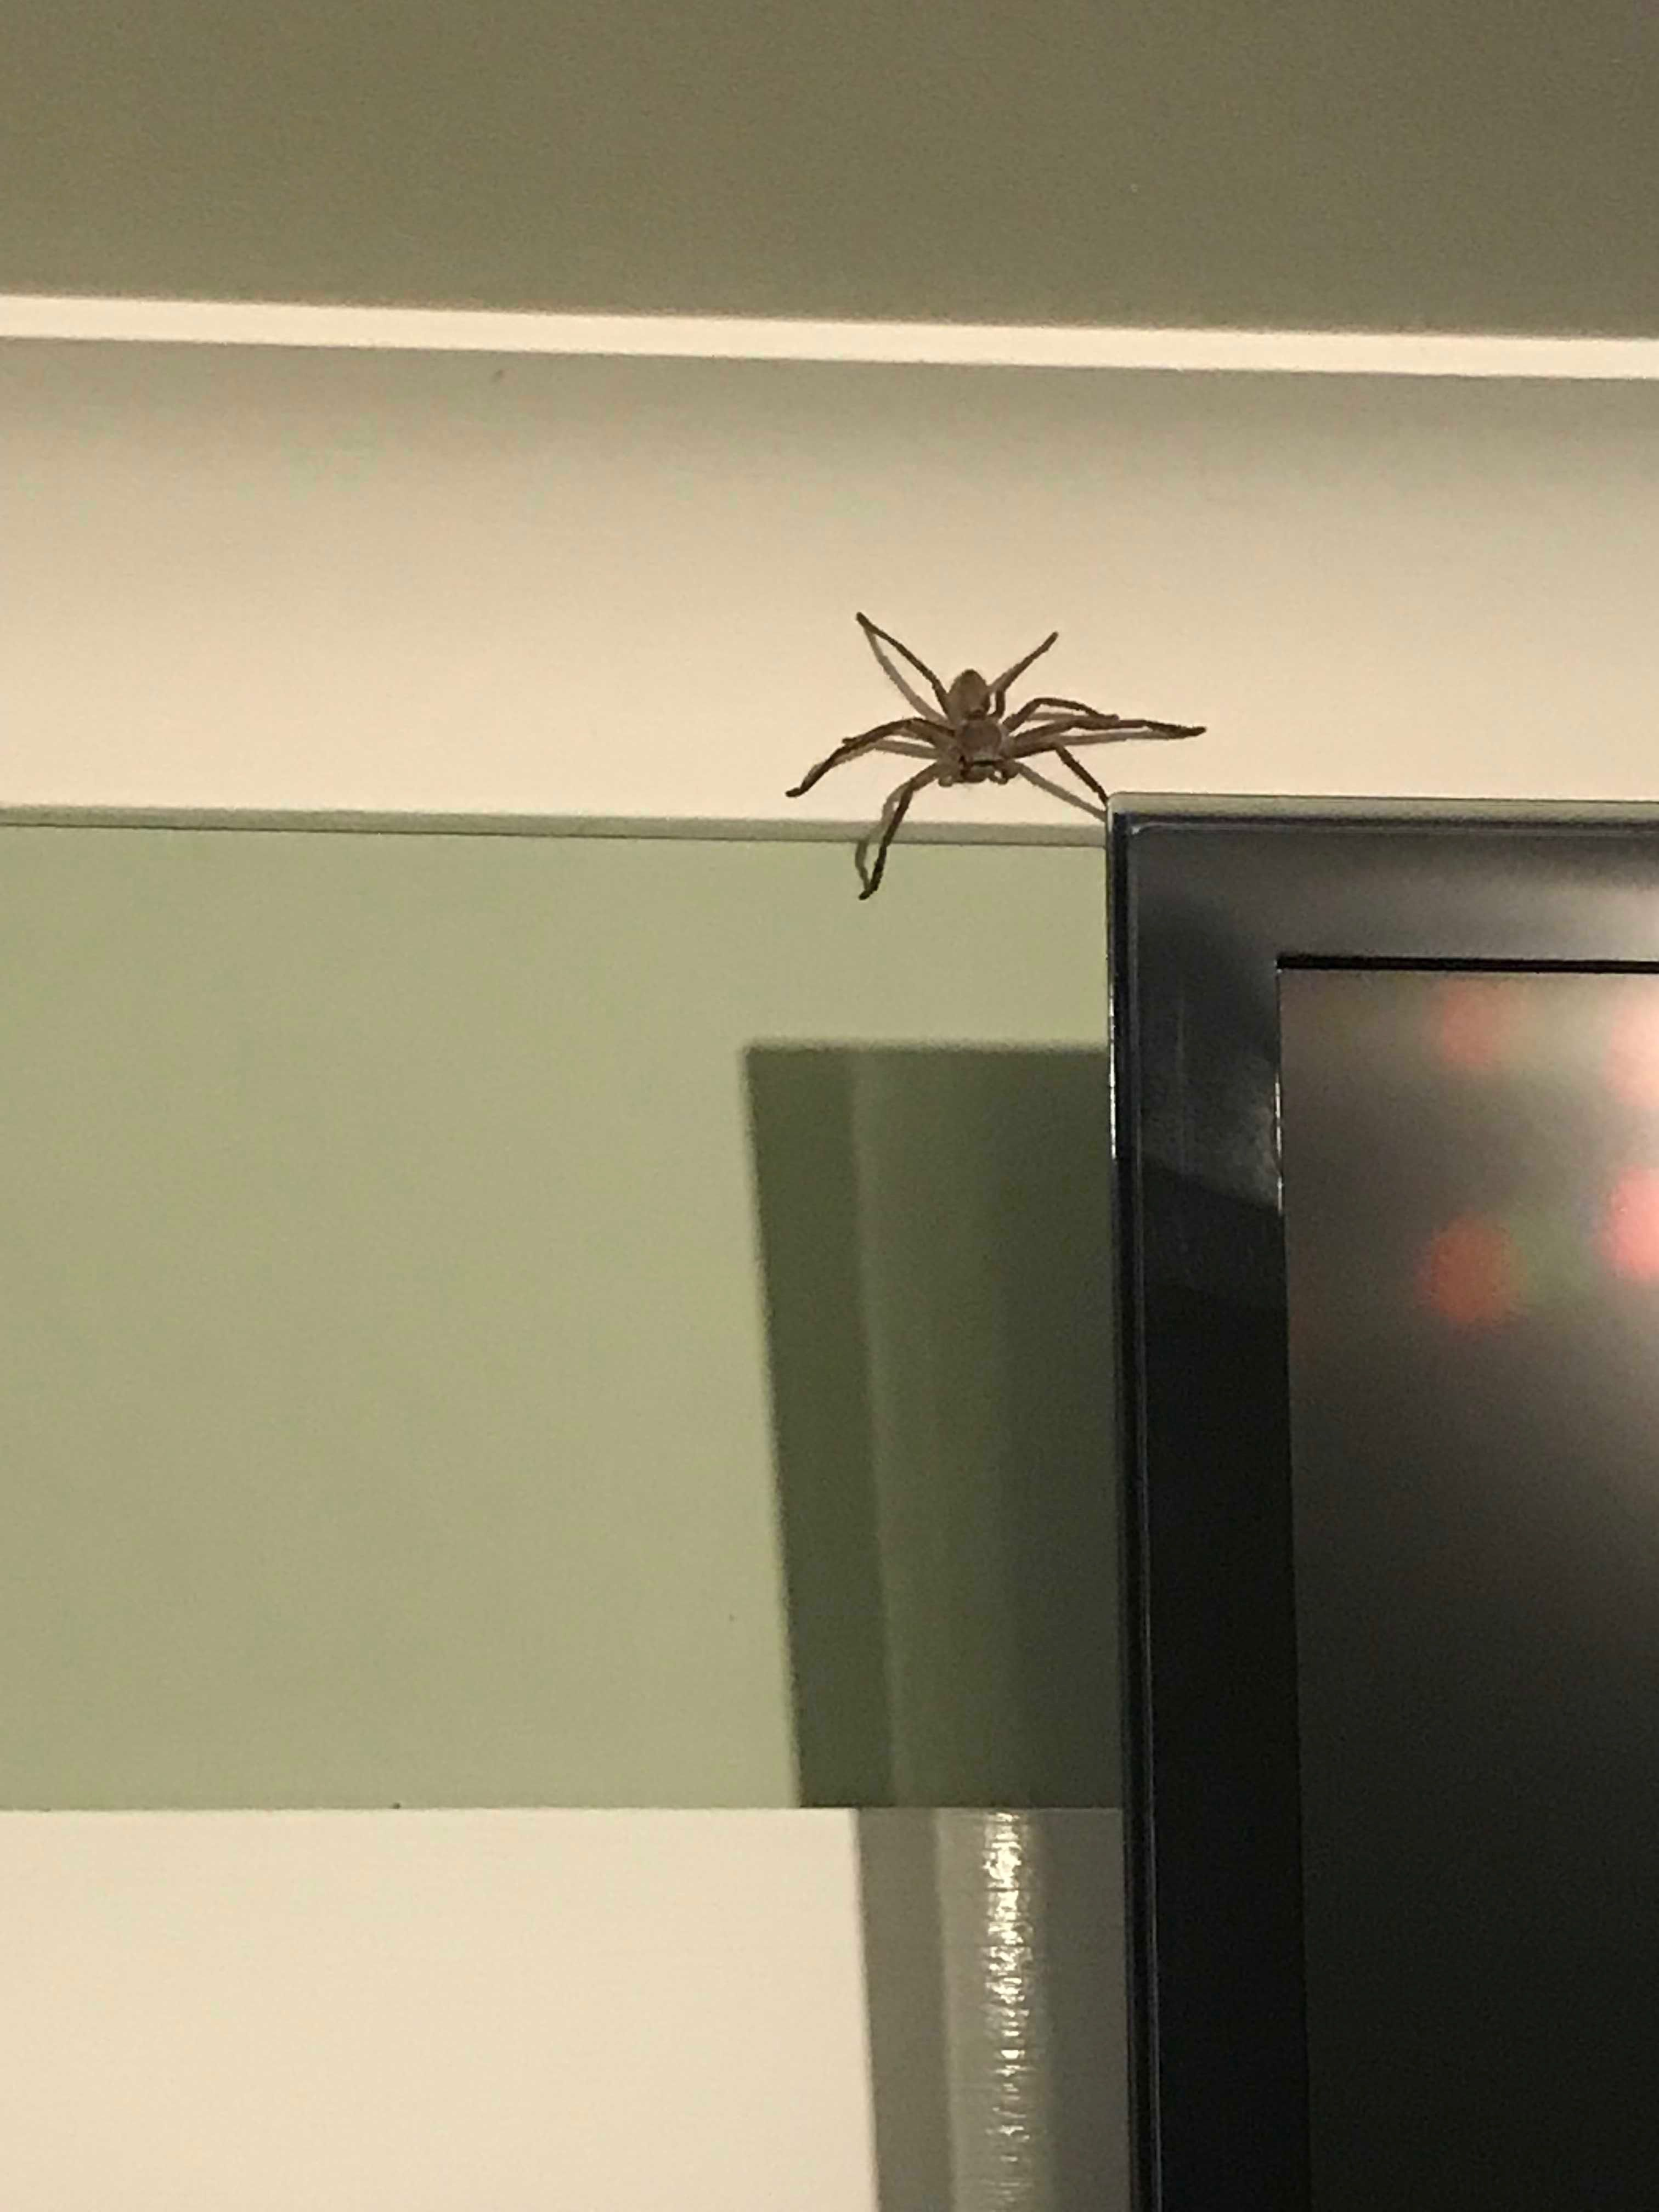 Huntsman on the bedroom wall next to the TV. I have been